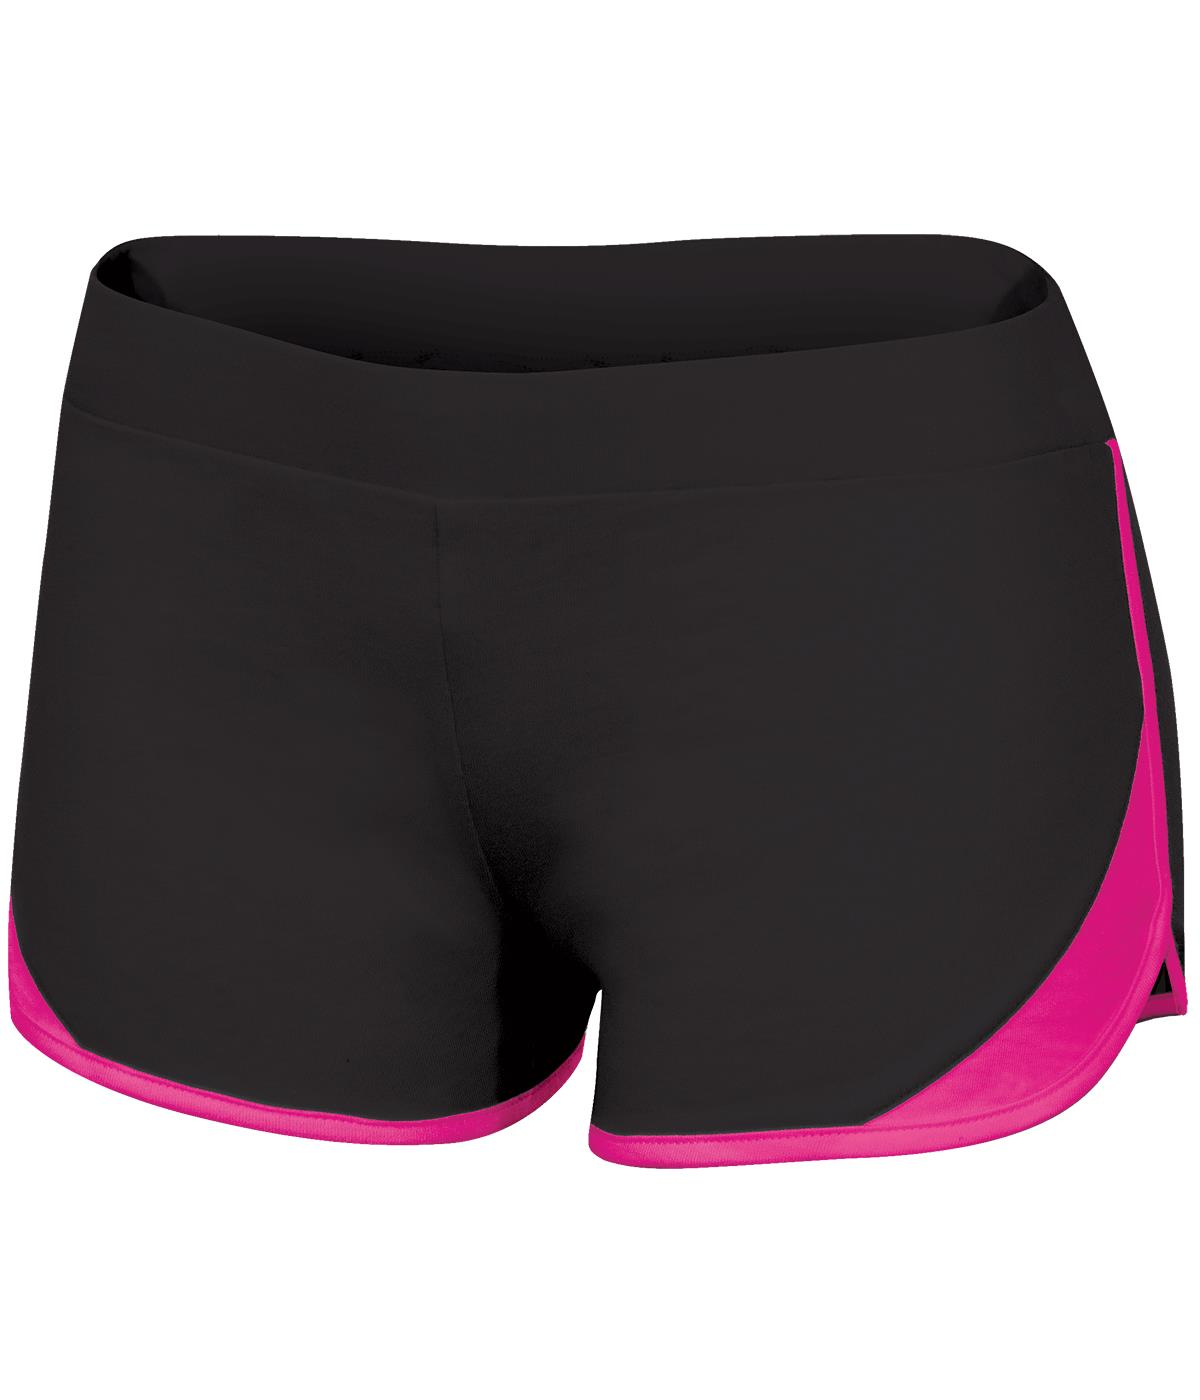 Chasse Ultimate Short